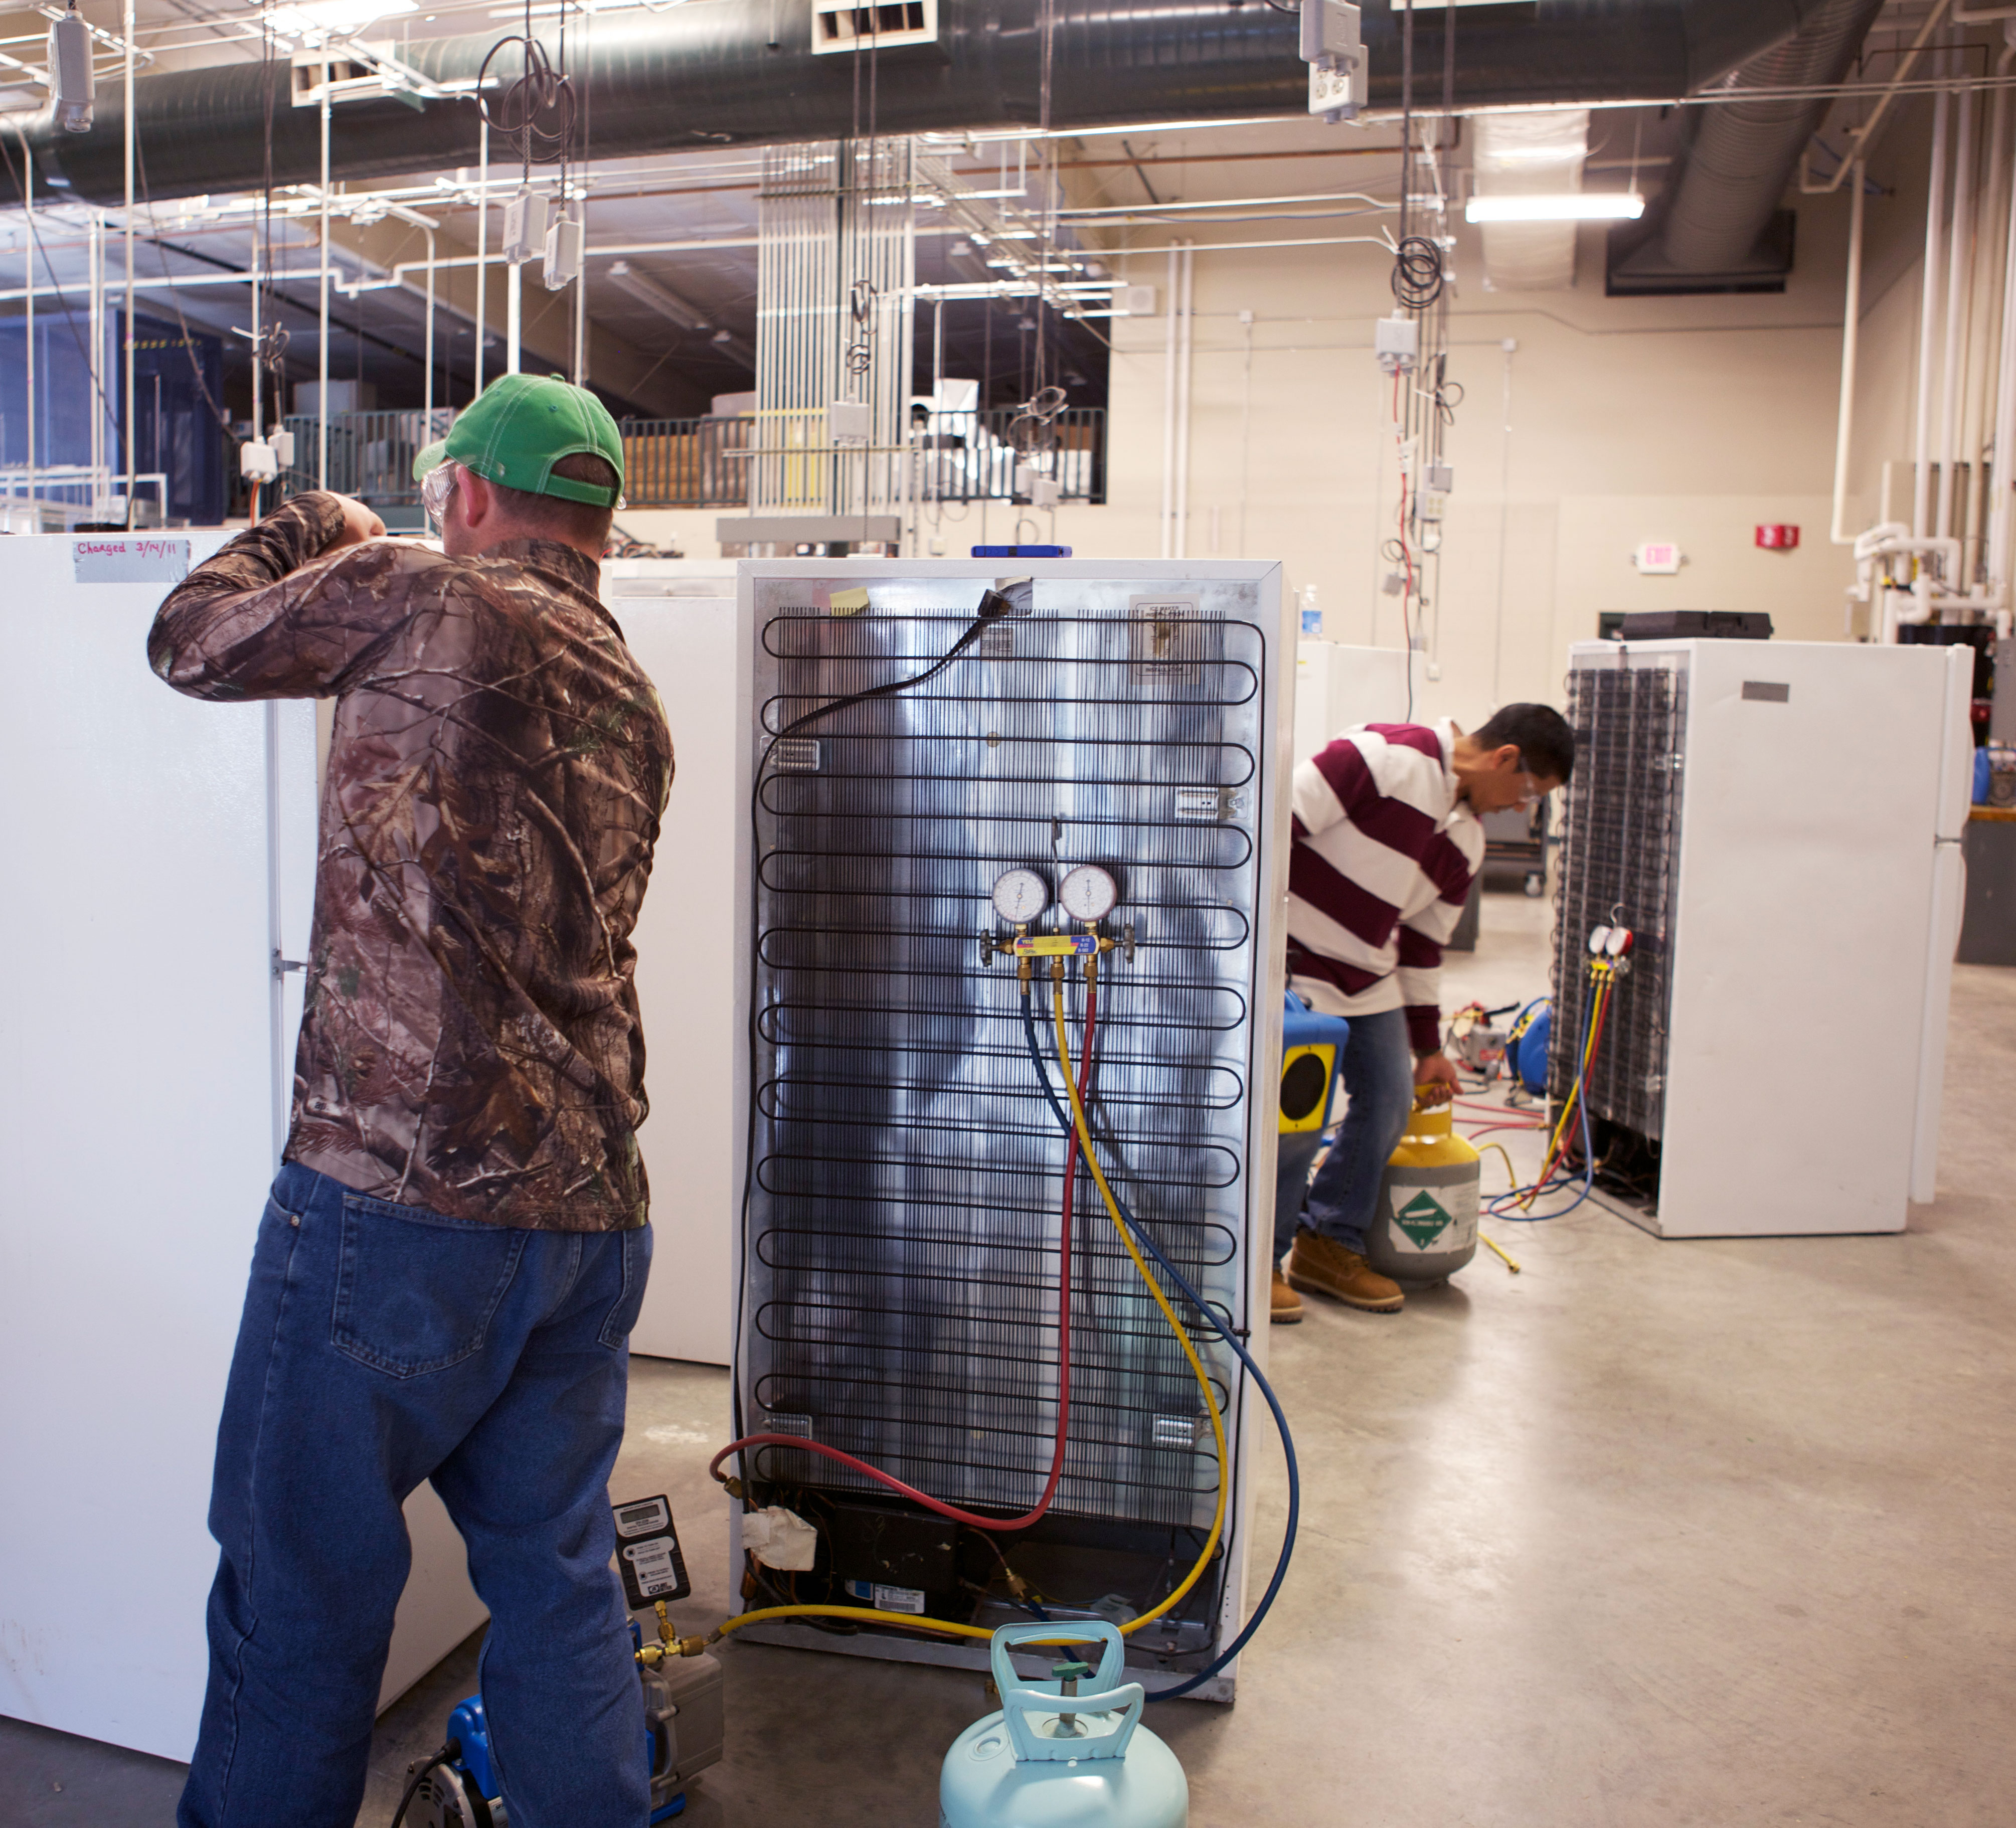 students working on residential refrigerators in a lab